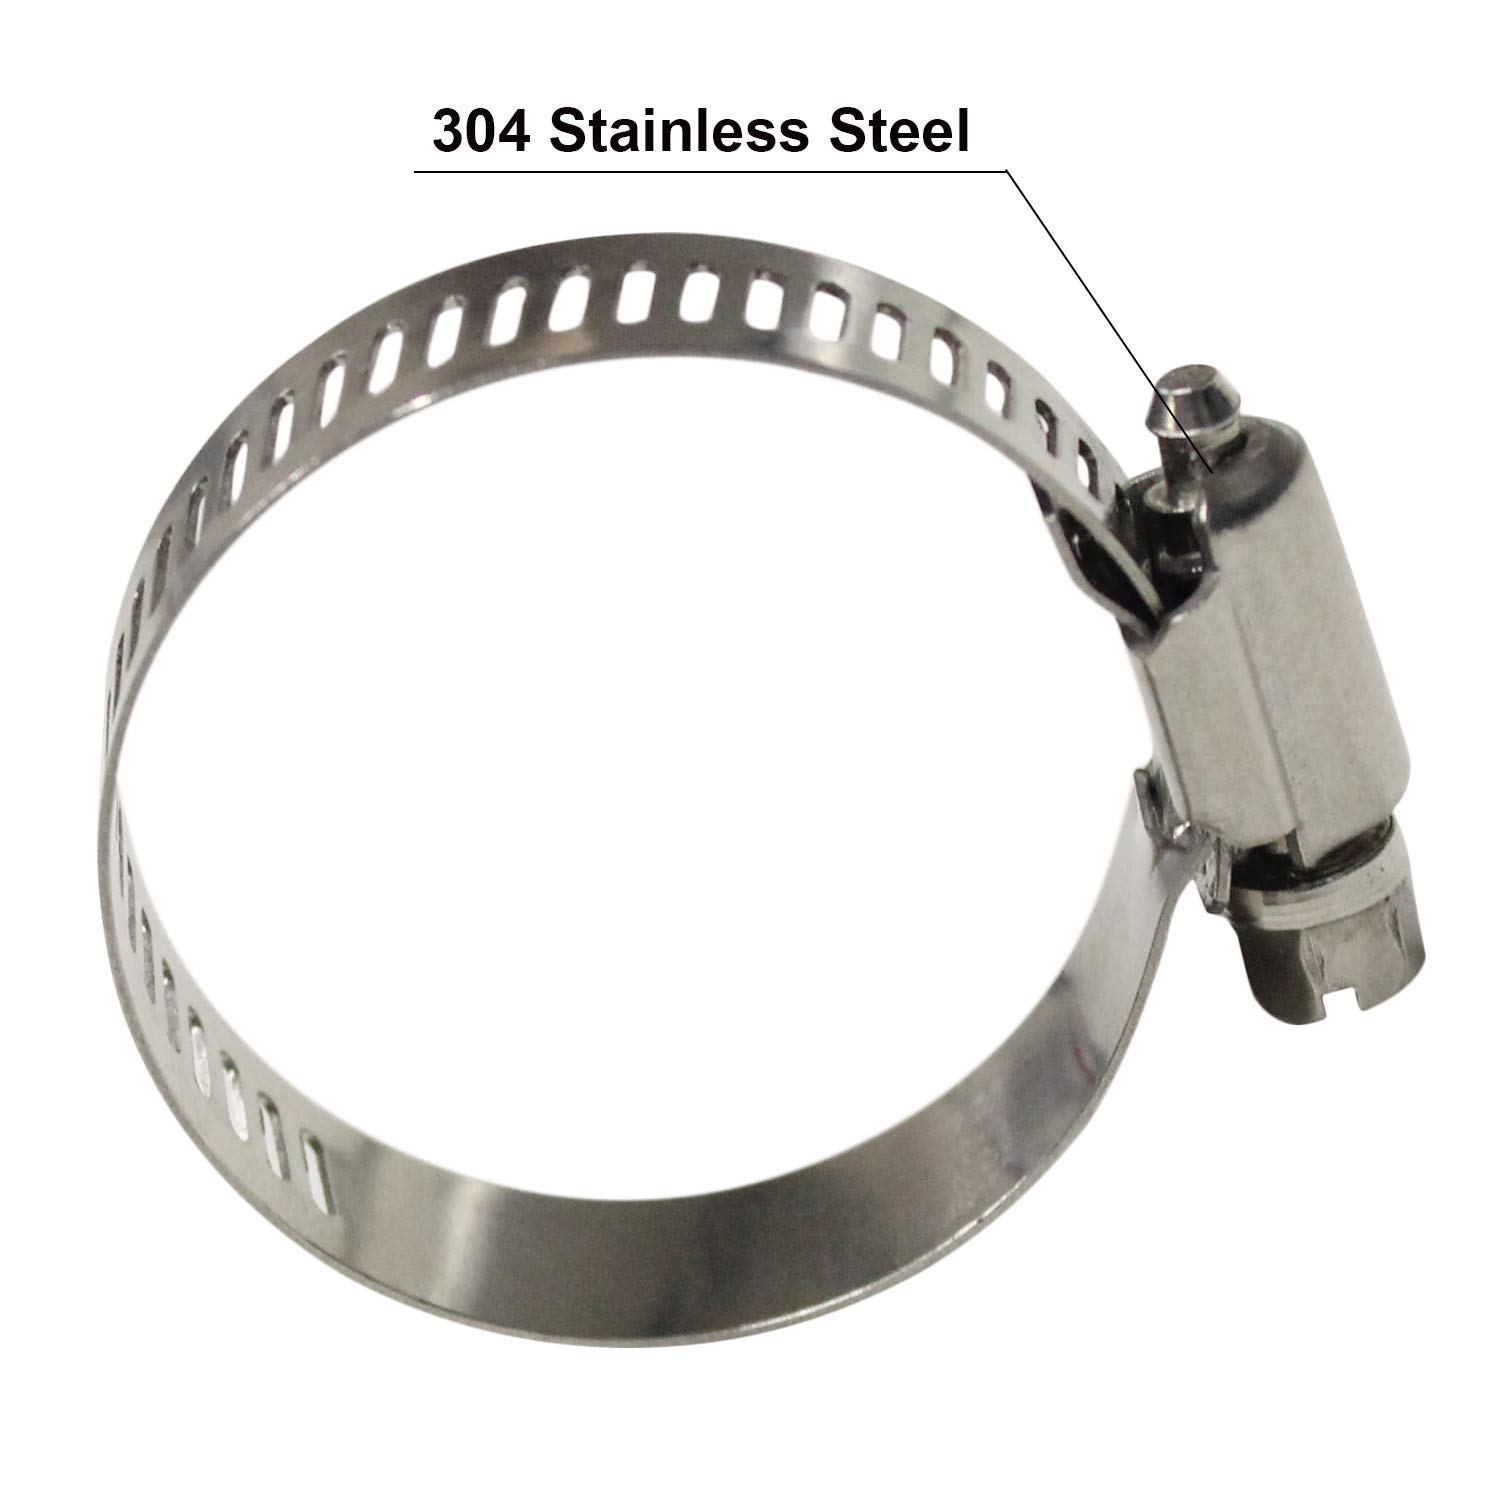 WYKA 5 Pack Worm Gear Hose Clamp Adjustable 304 Stainless Steel Pipe Clips 4.65-5.51 118-140mm